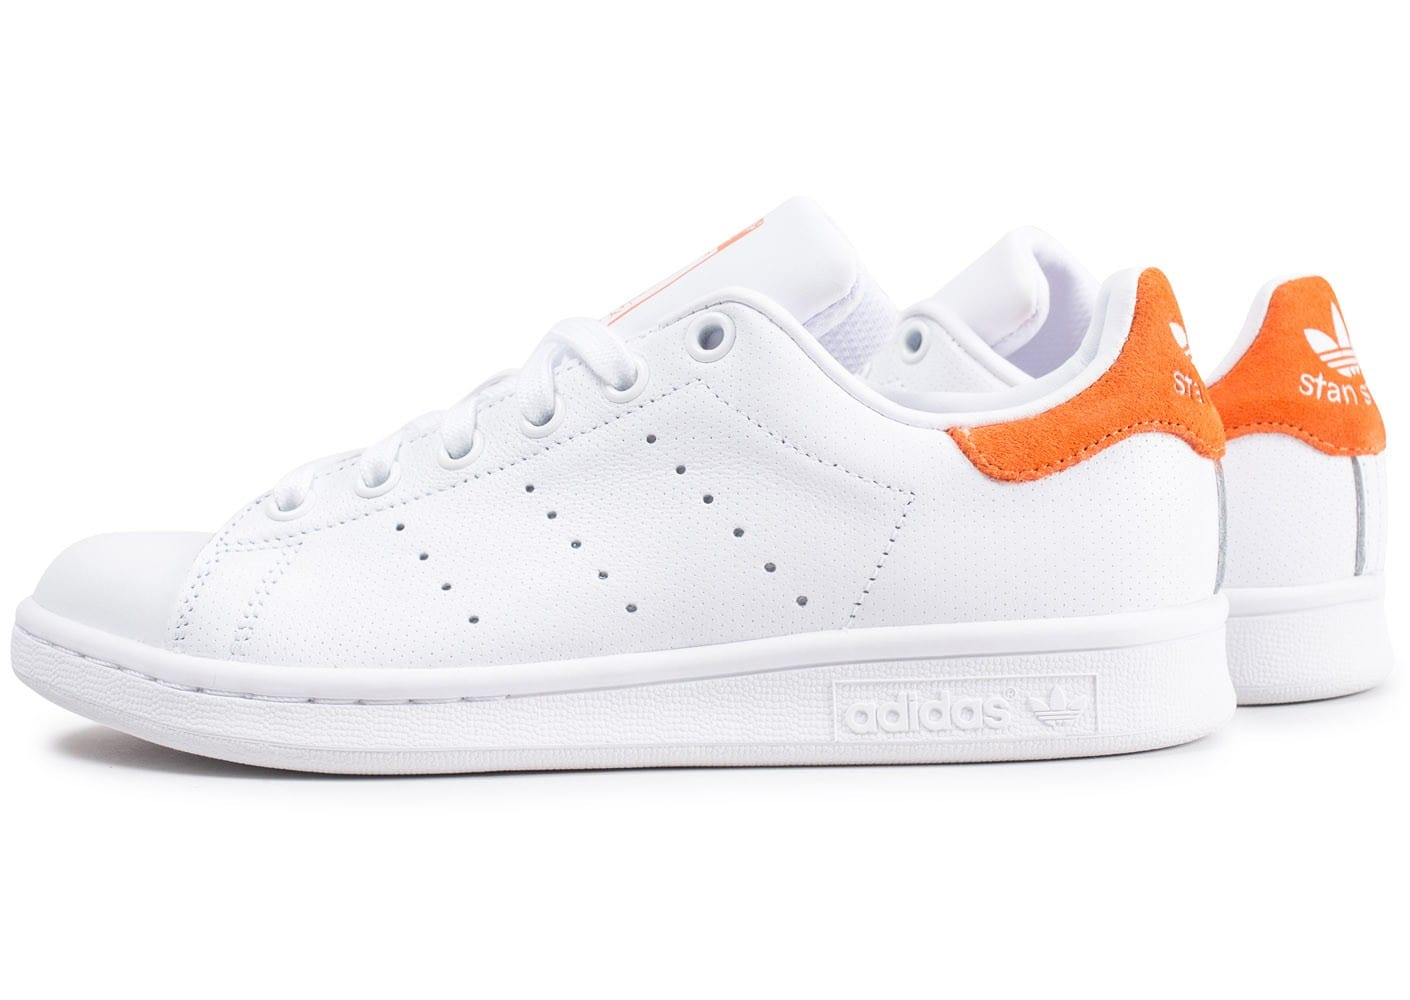 Et Orange Smith Suede Stan Chaussures Blanche Adidas qtwU1U